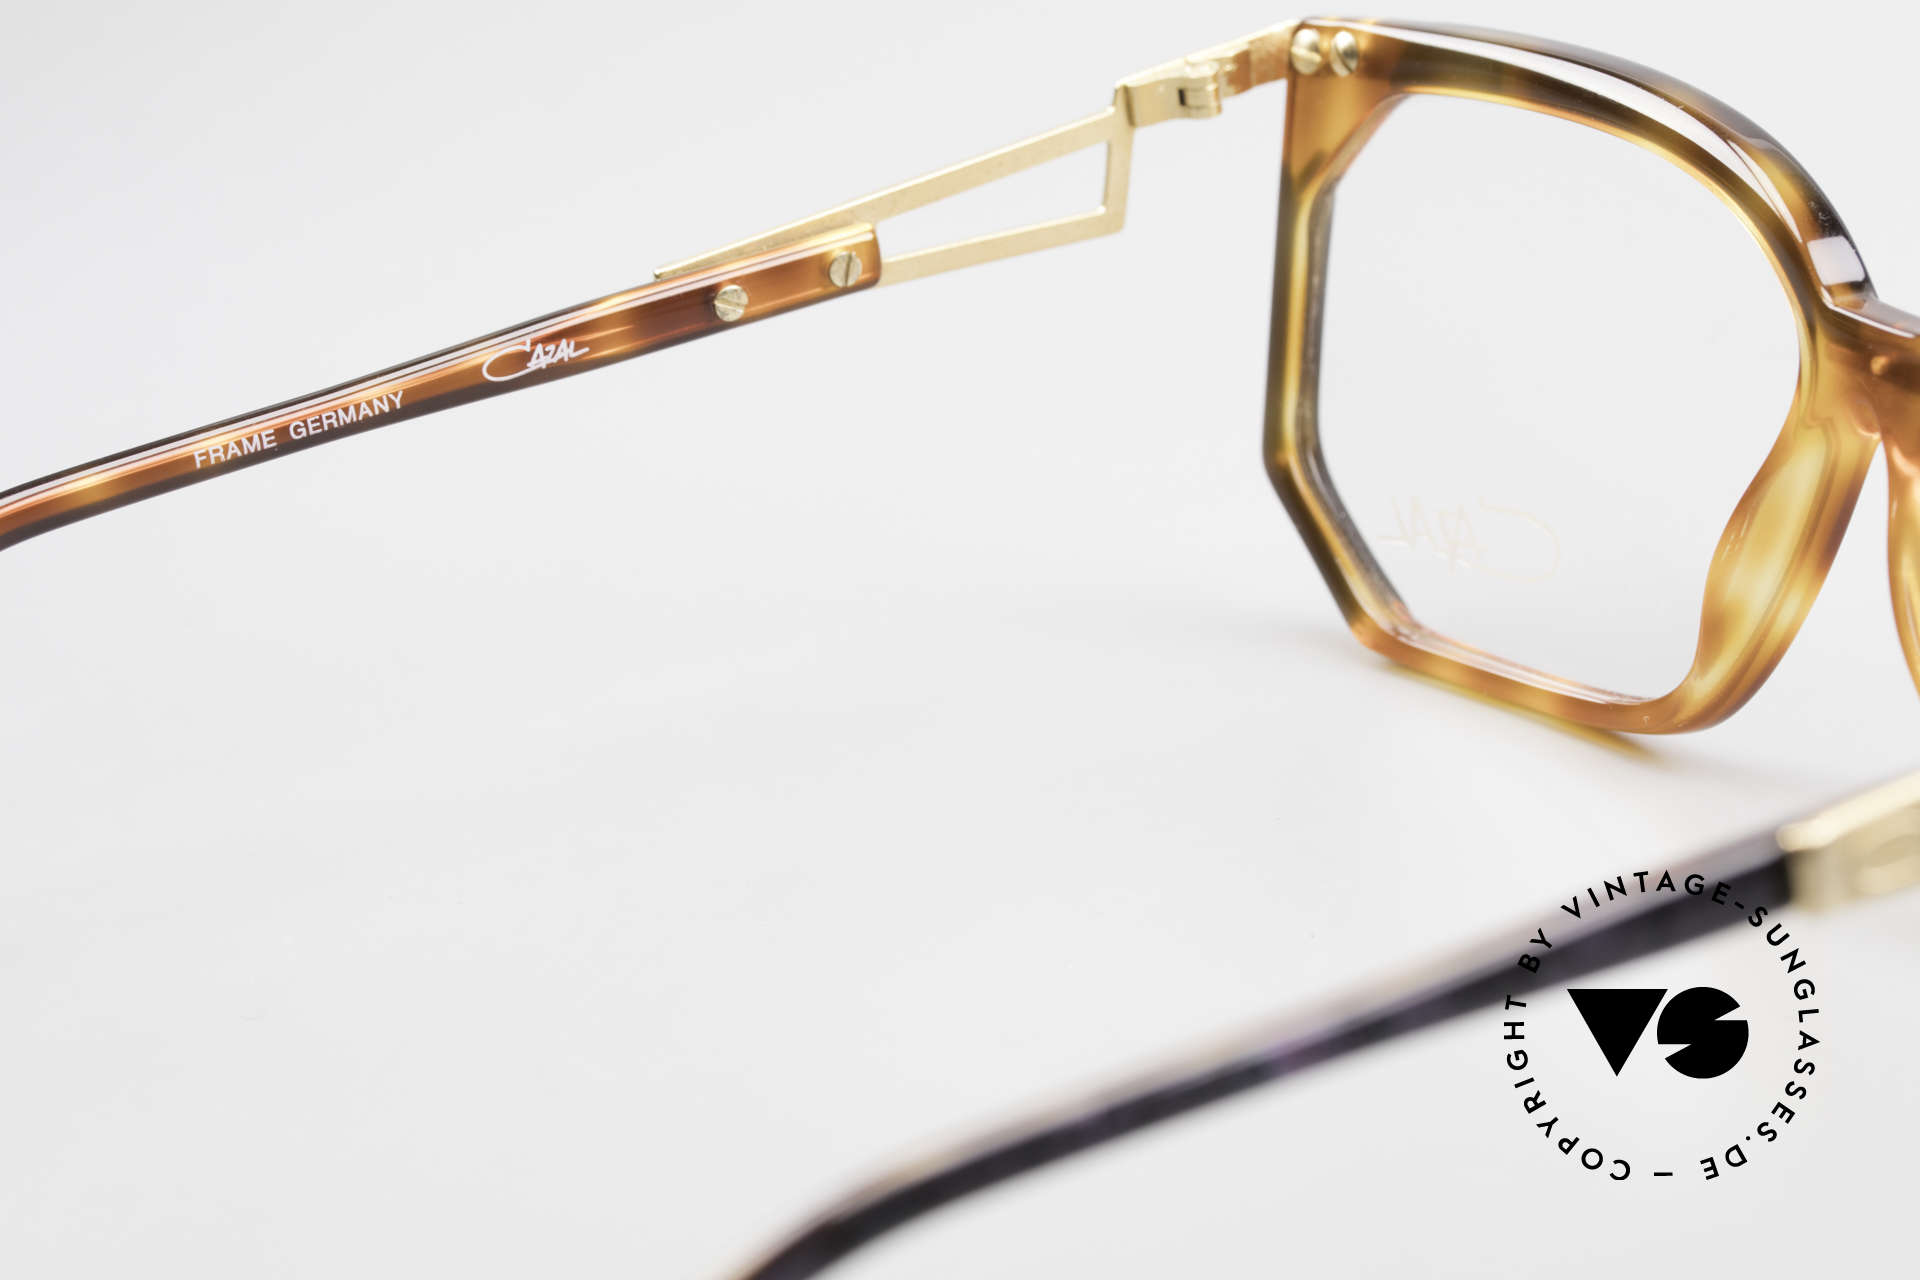 Cazal 333 True Vintage HipHop Frame 90s, clear CAZAL demo lenses can be replaced optionally, Made for Men and Women